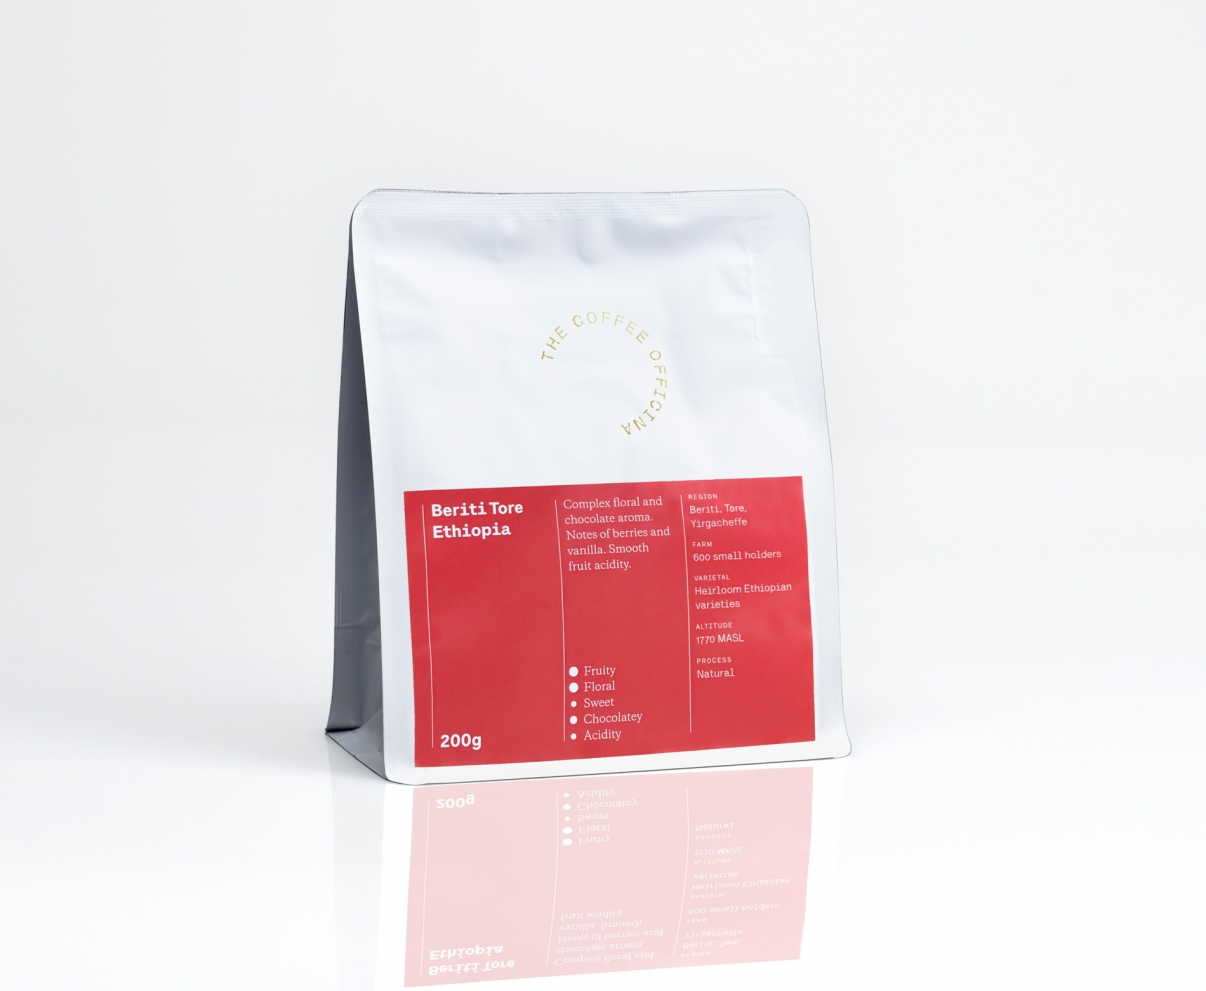 The Coffee Officina Beriti Tore Ethiopia Single Origin